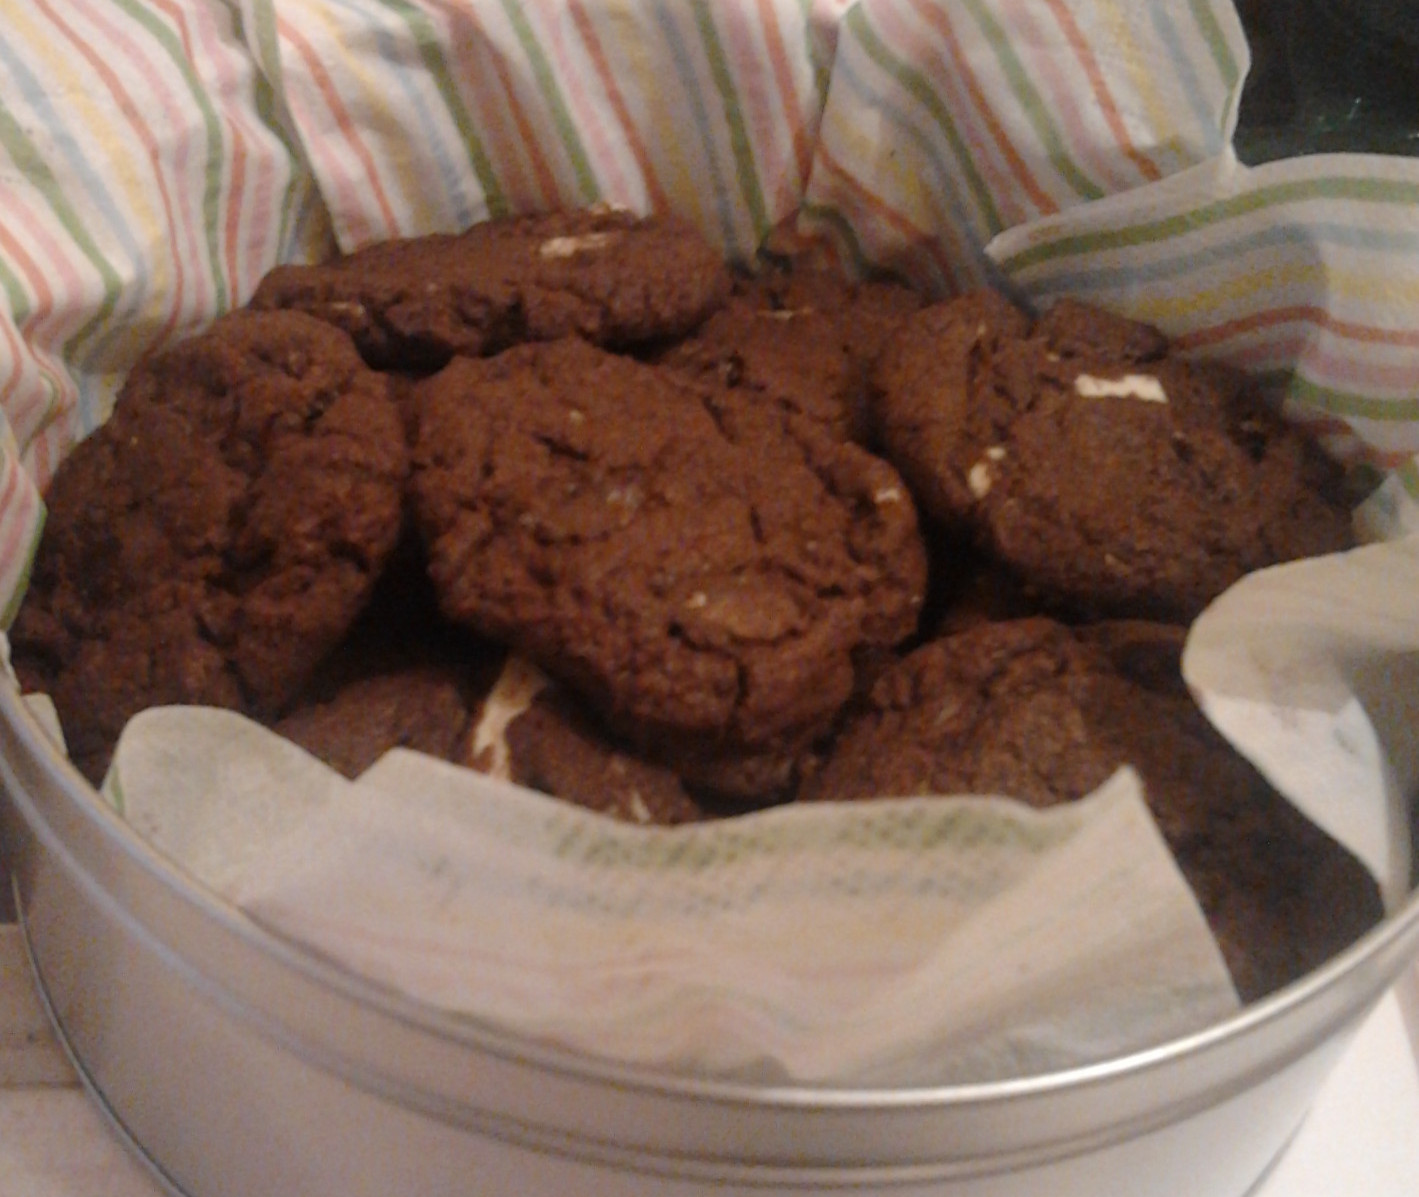 Triple Chocolate Cookies in der Dose